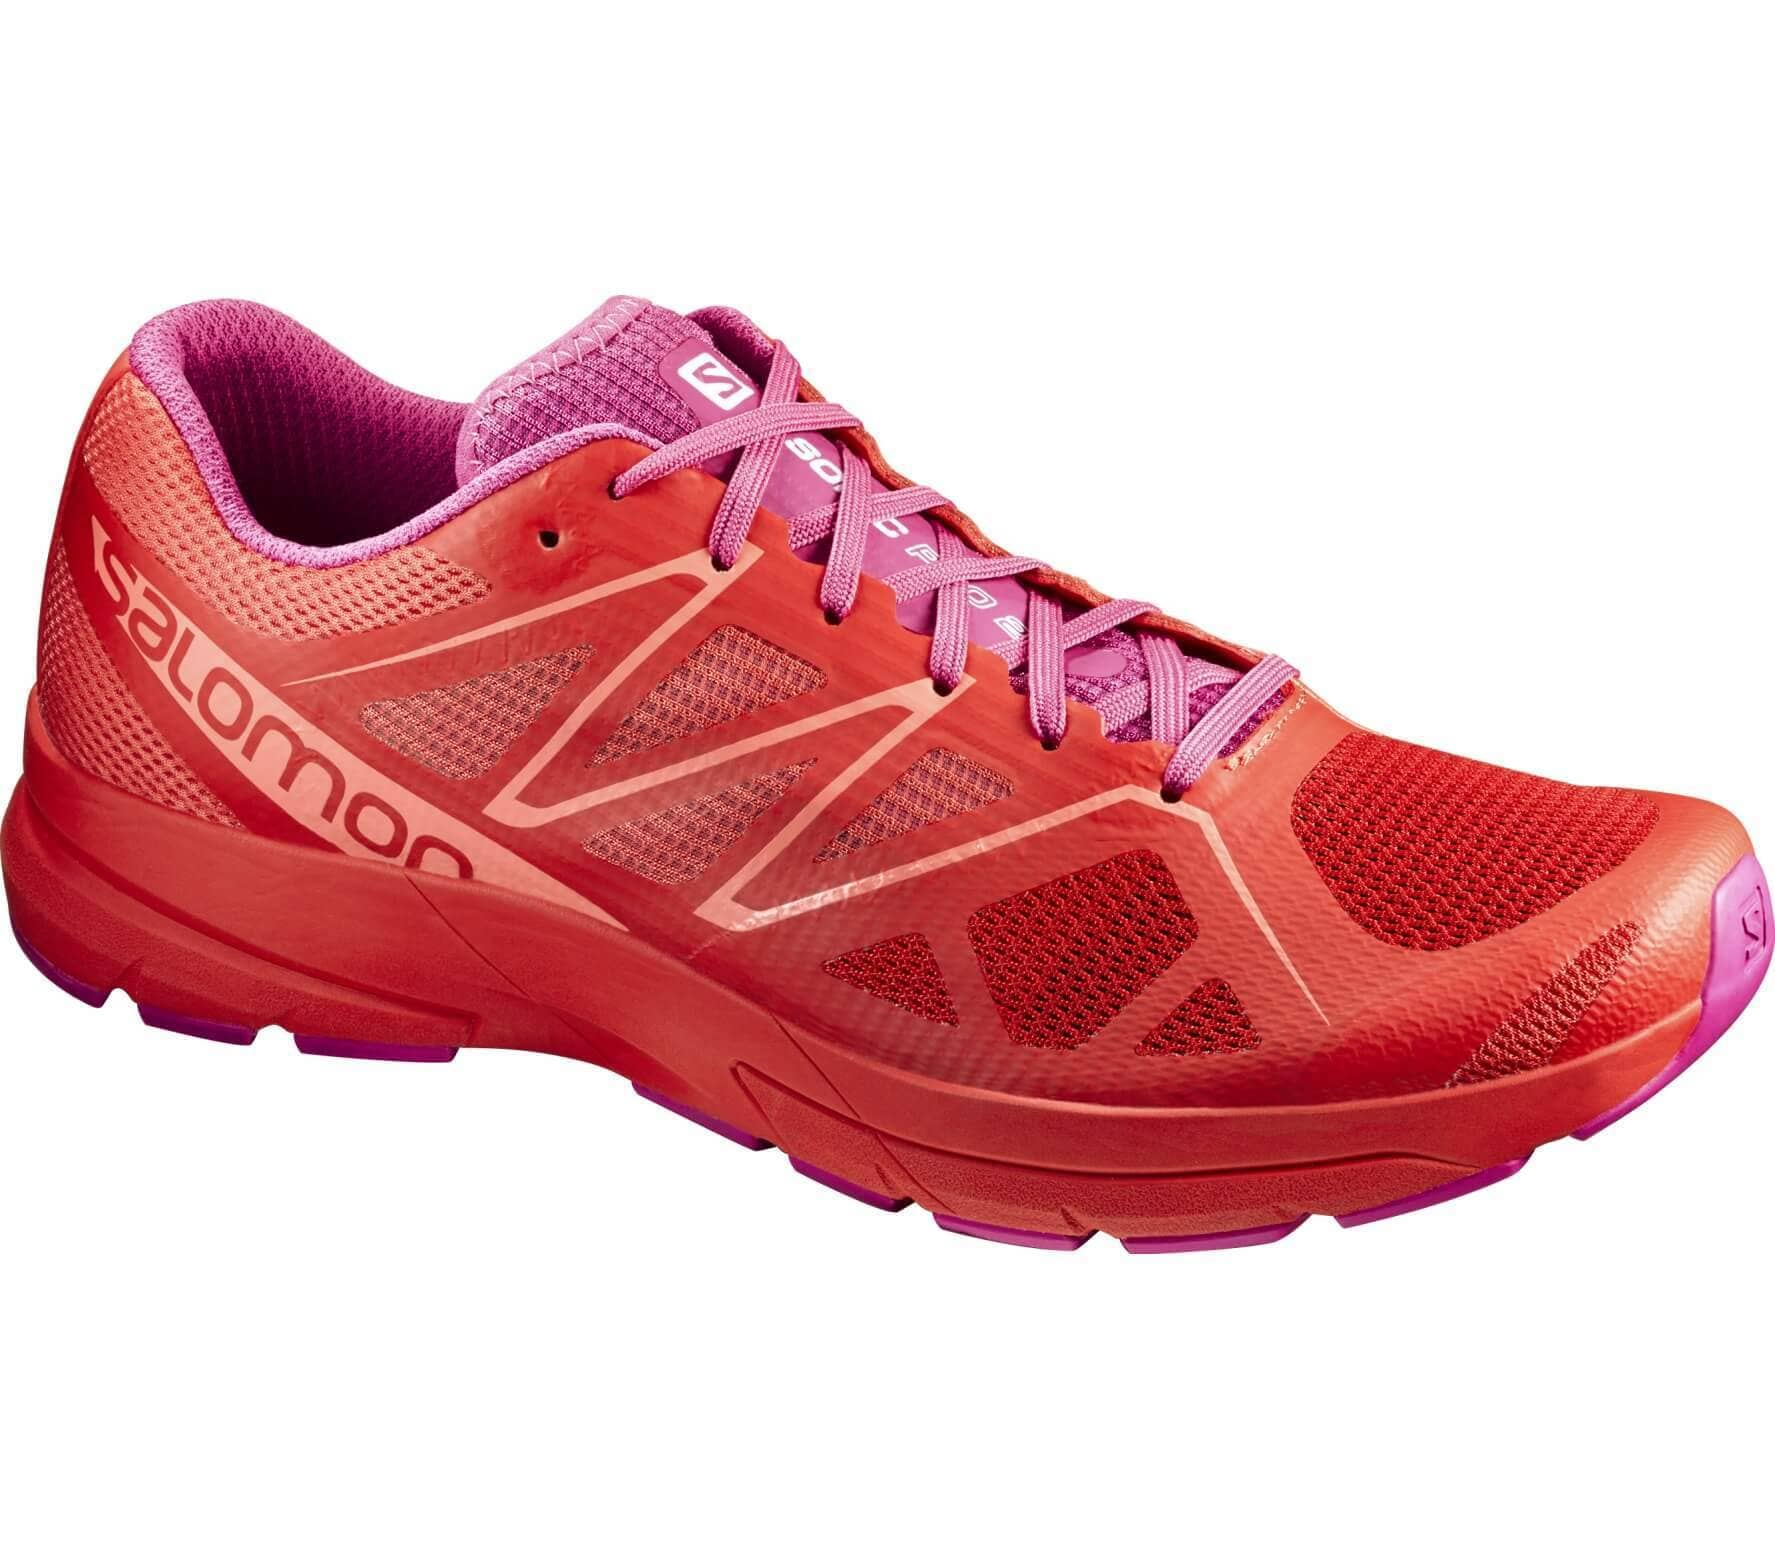 0e274cc42b00 Salomon - Sonic Pro 2 women s running shoes (orange lilac) - buy it ...